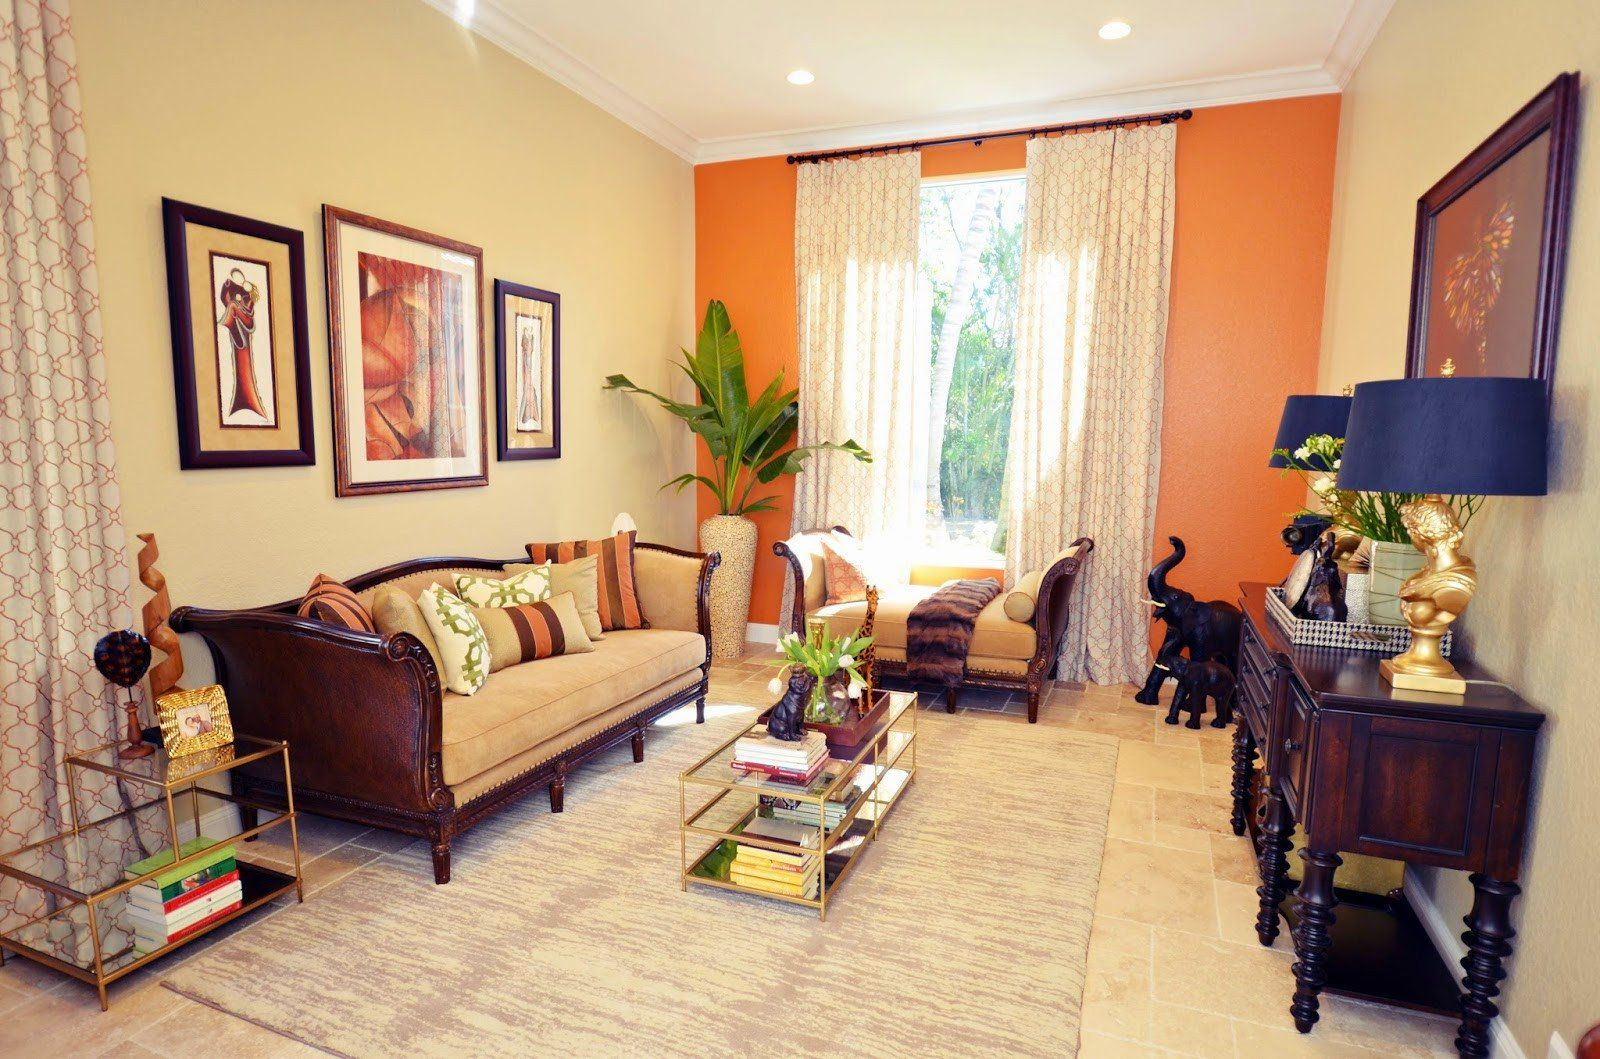 Small Living Room Accent Walls Ideas Fresh 33 Stunning Accent Wall Ideas For Living Room Accent Walls In Living Room Living Room Orange Living Room Accents